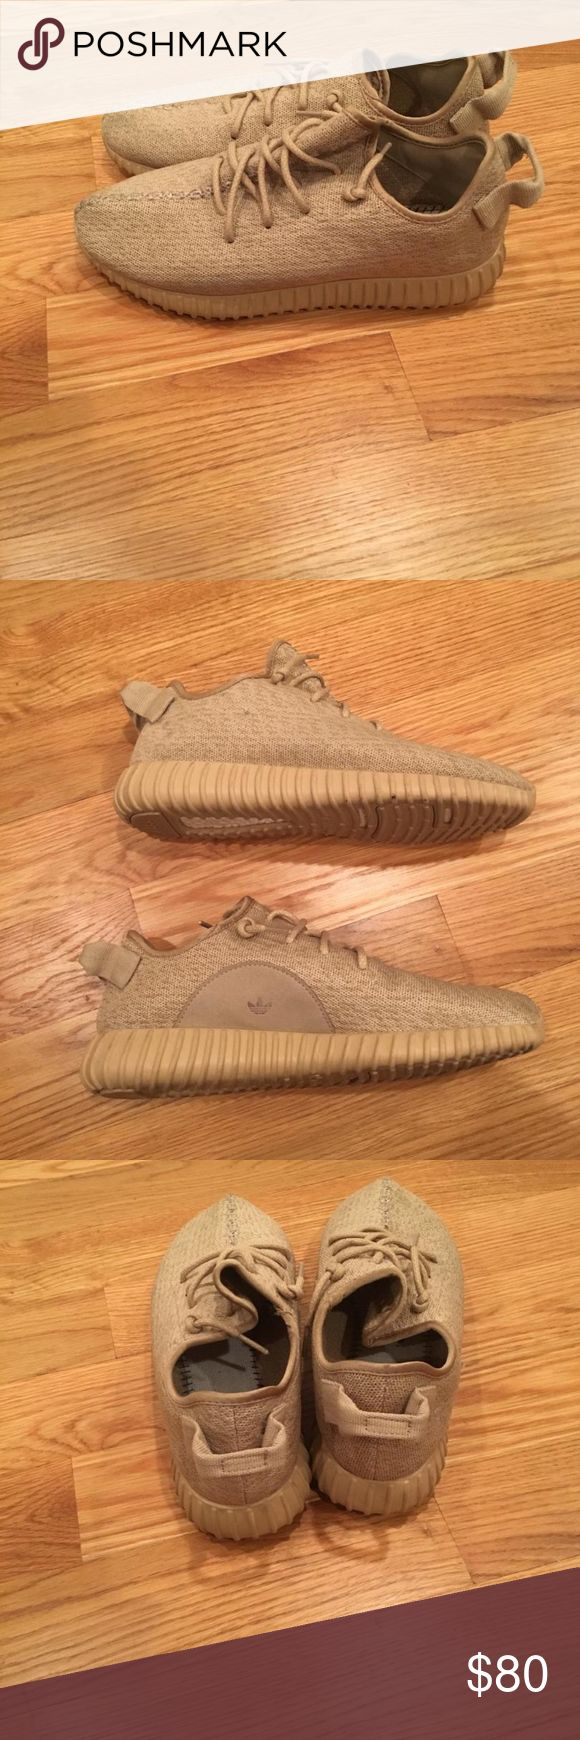 Yeezy Oxford Tan They're not real, but they're really good fakes.  They look just like the real thing.  NAME YOUR PRICE Yeezy Shoes Sneakers